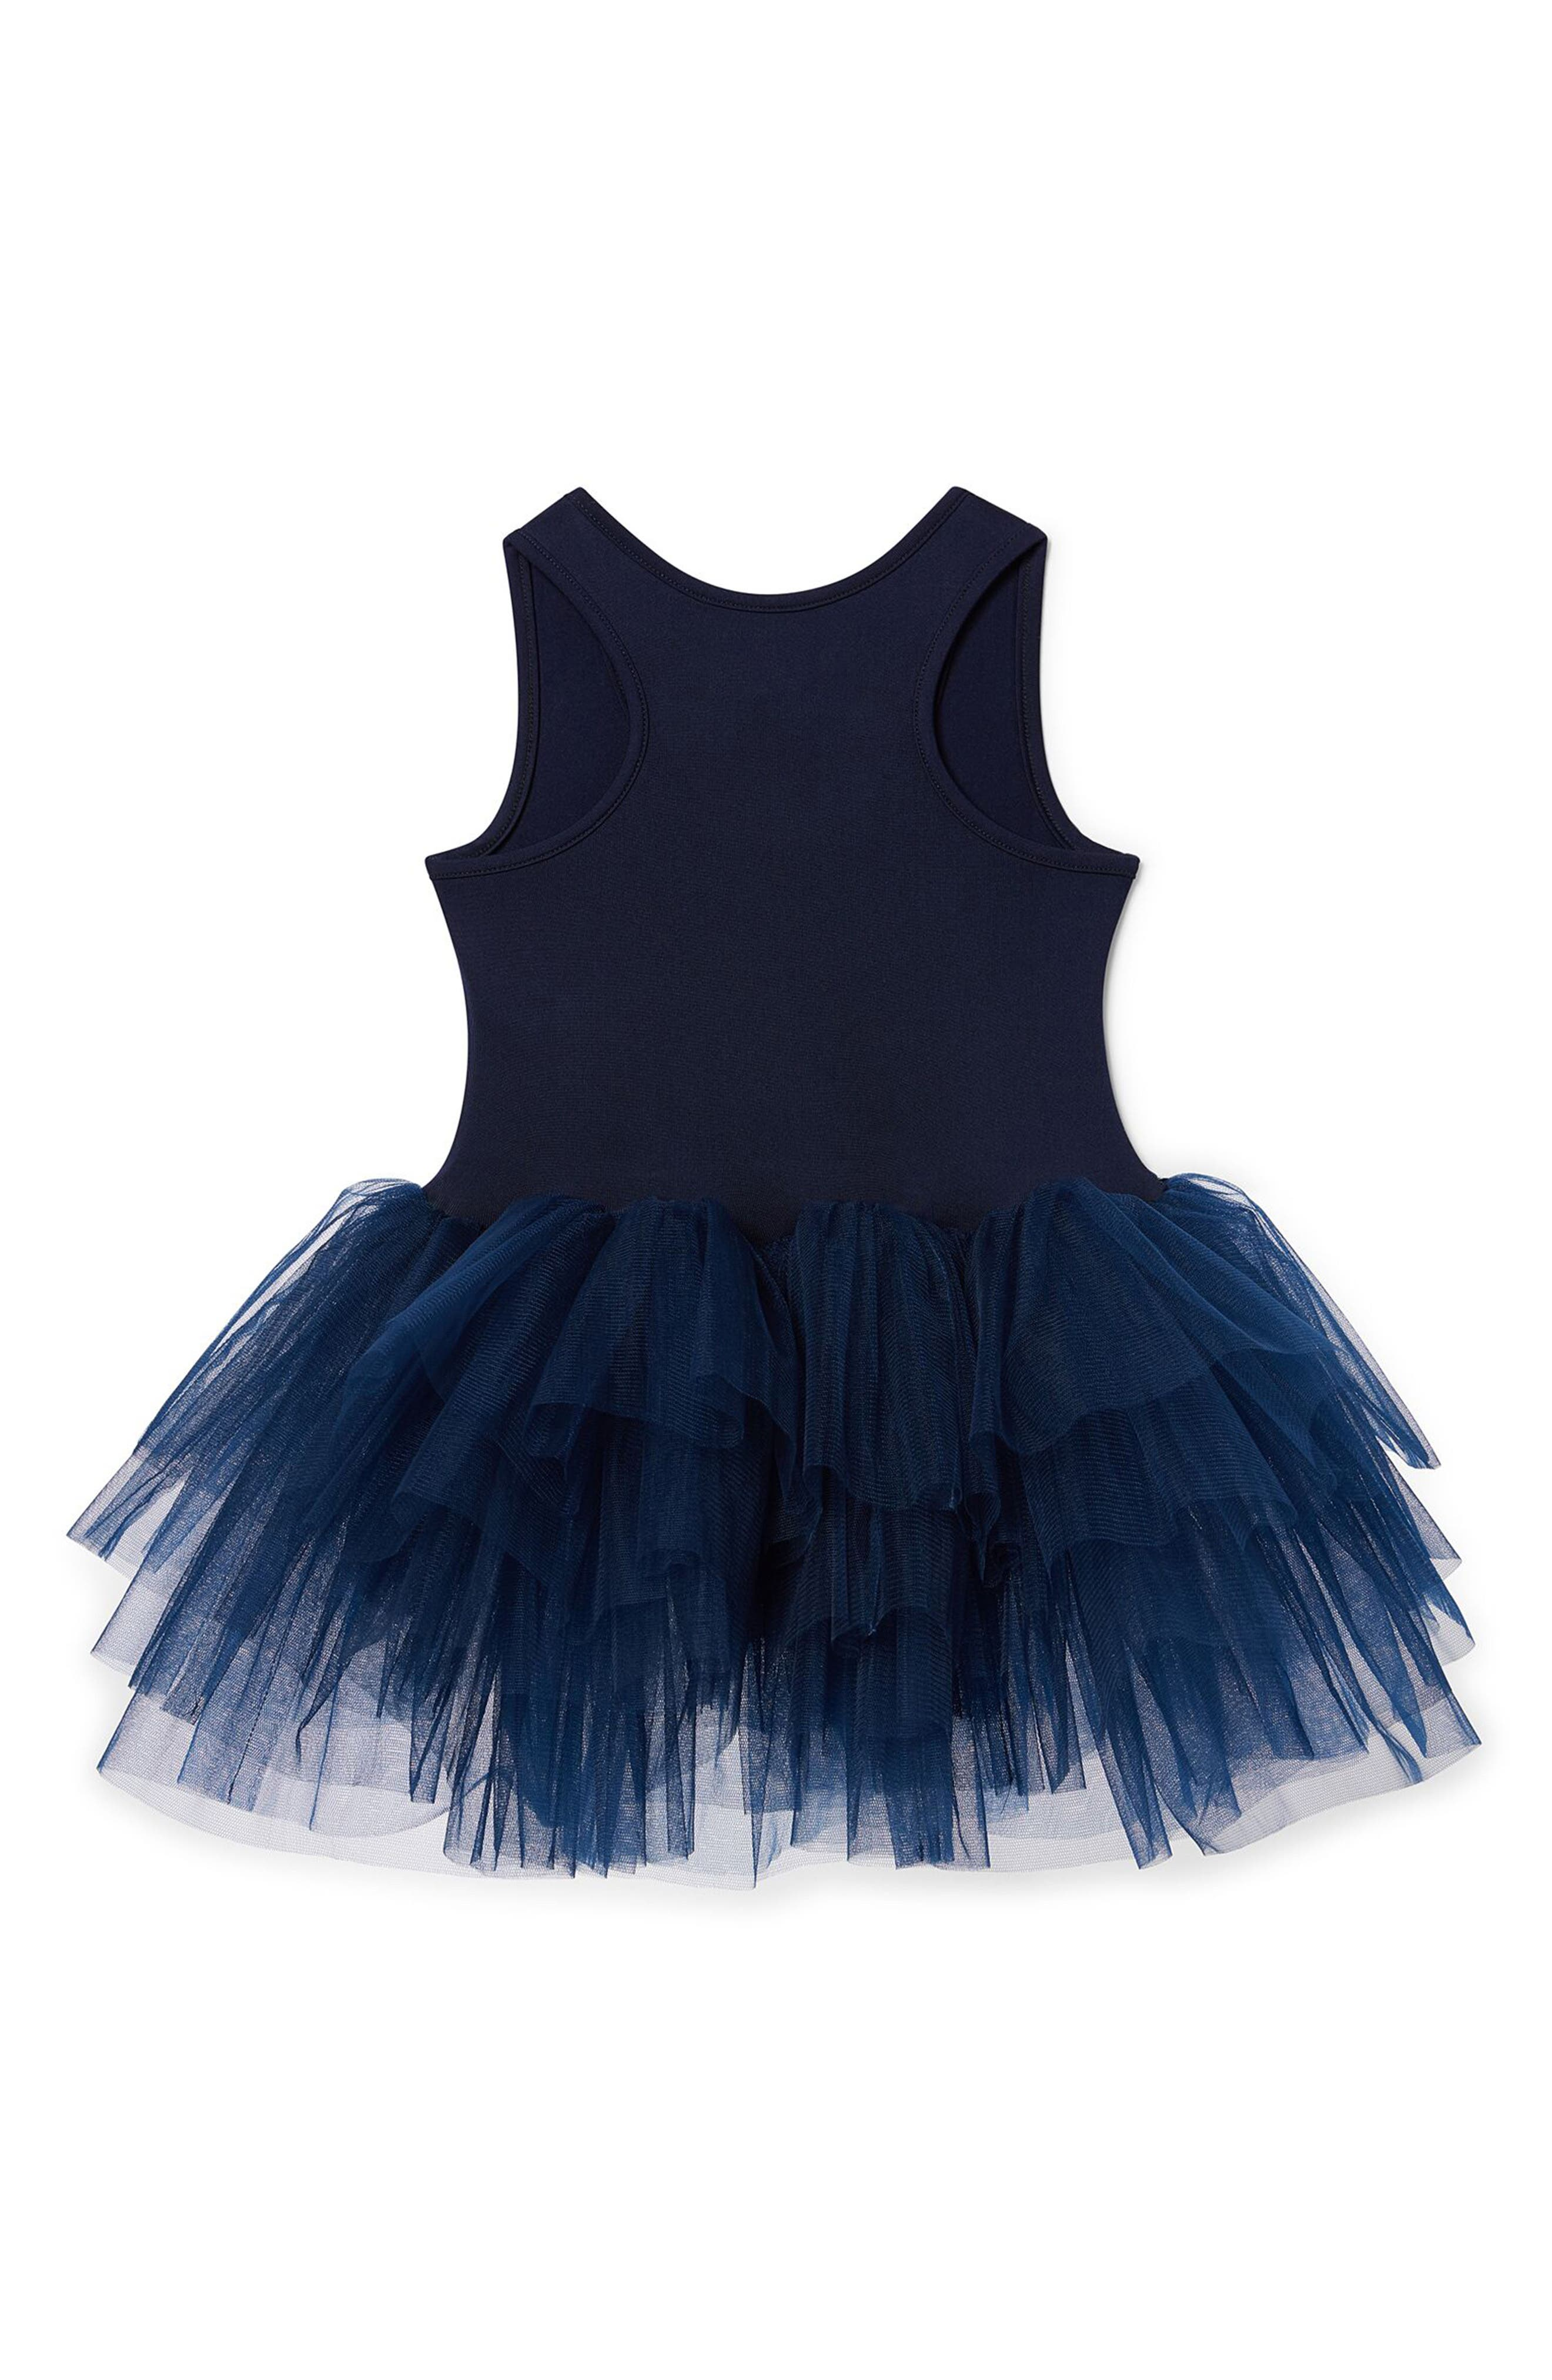 Tutu Dress,                             Alternate thumbnail 2, color,                             400